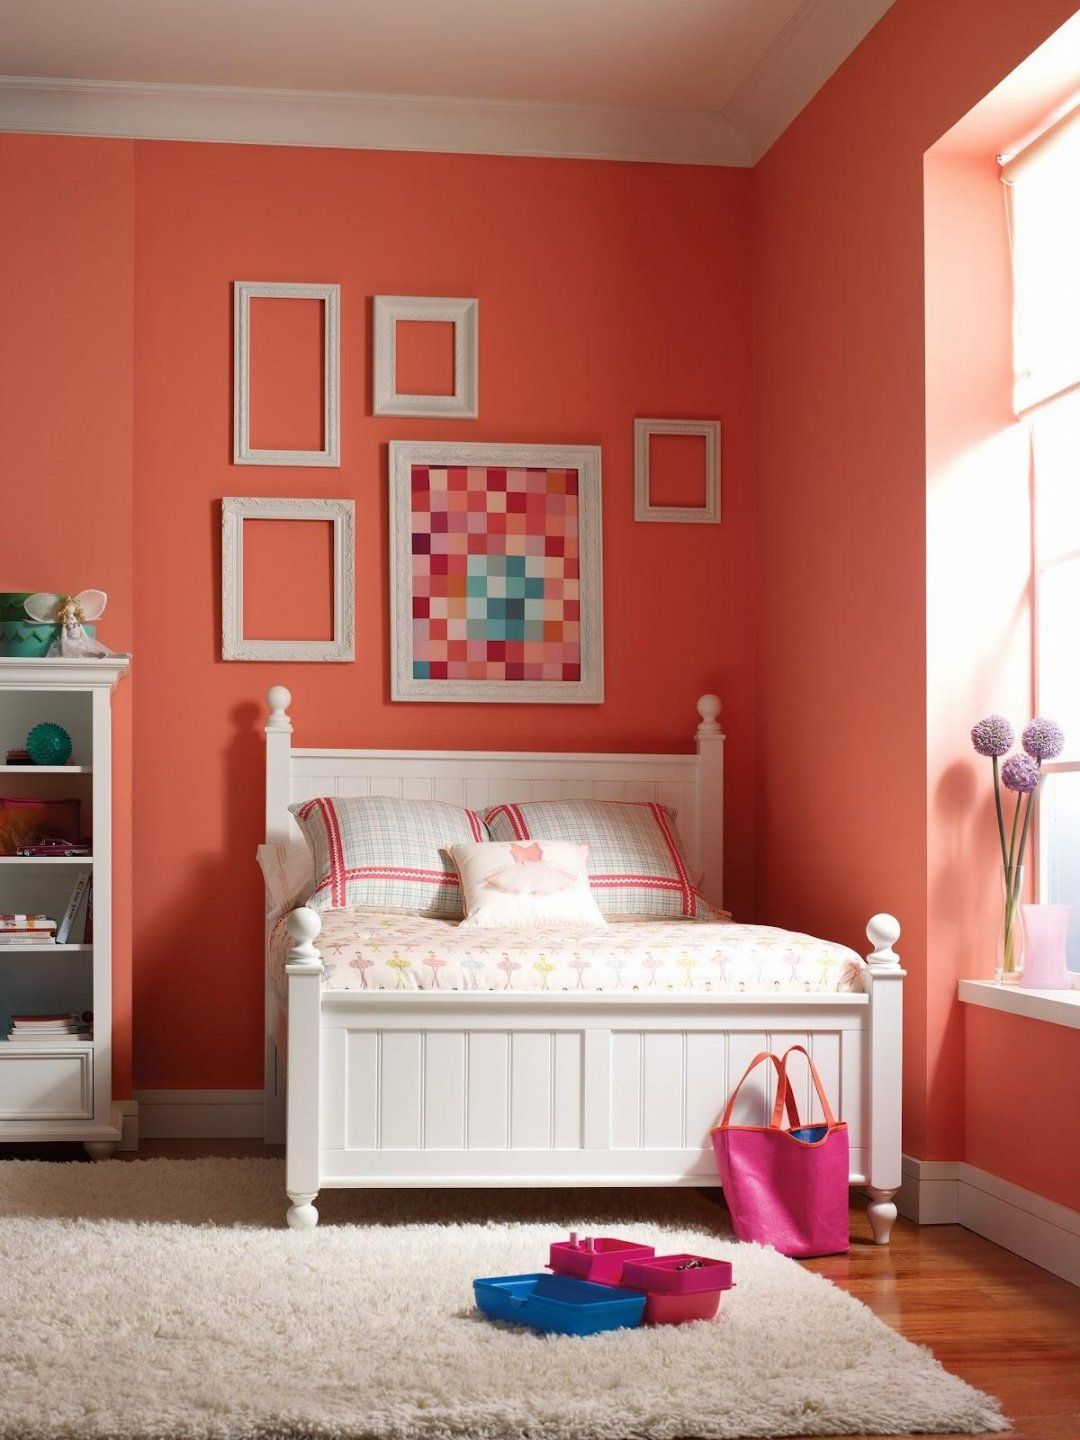 50 Perfect Bedroom Paint Color Ideas For Your Next Project Images Bright Bedroom Colors Small Bedroom Colours Girls Bedroom Paint Colors